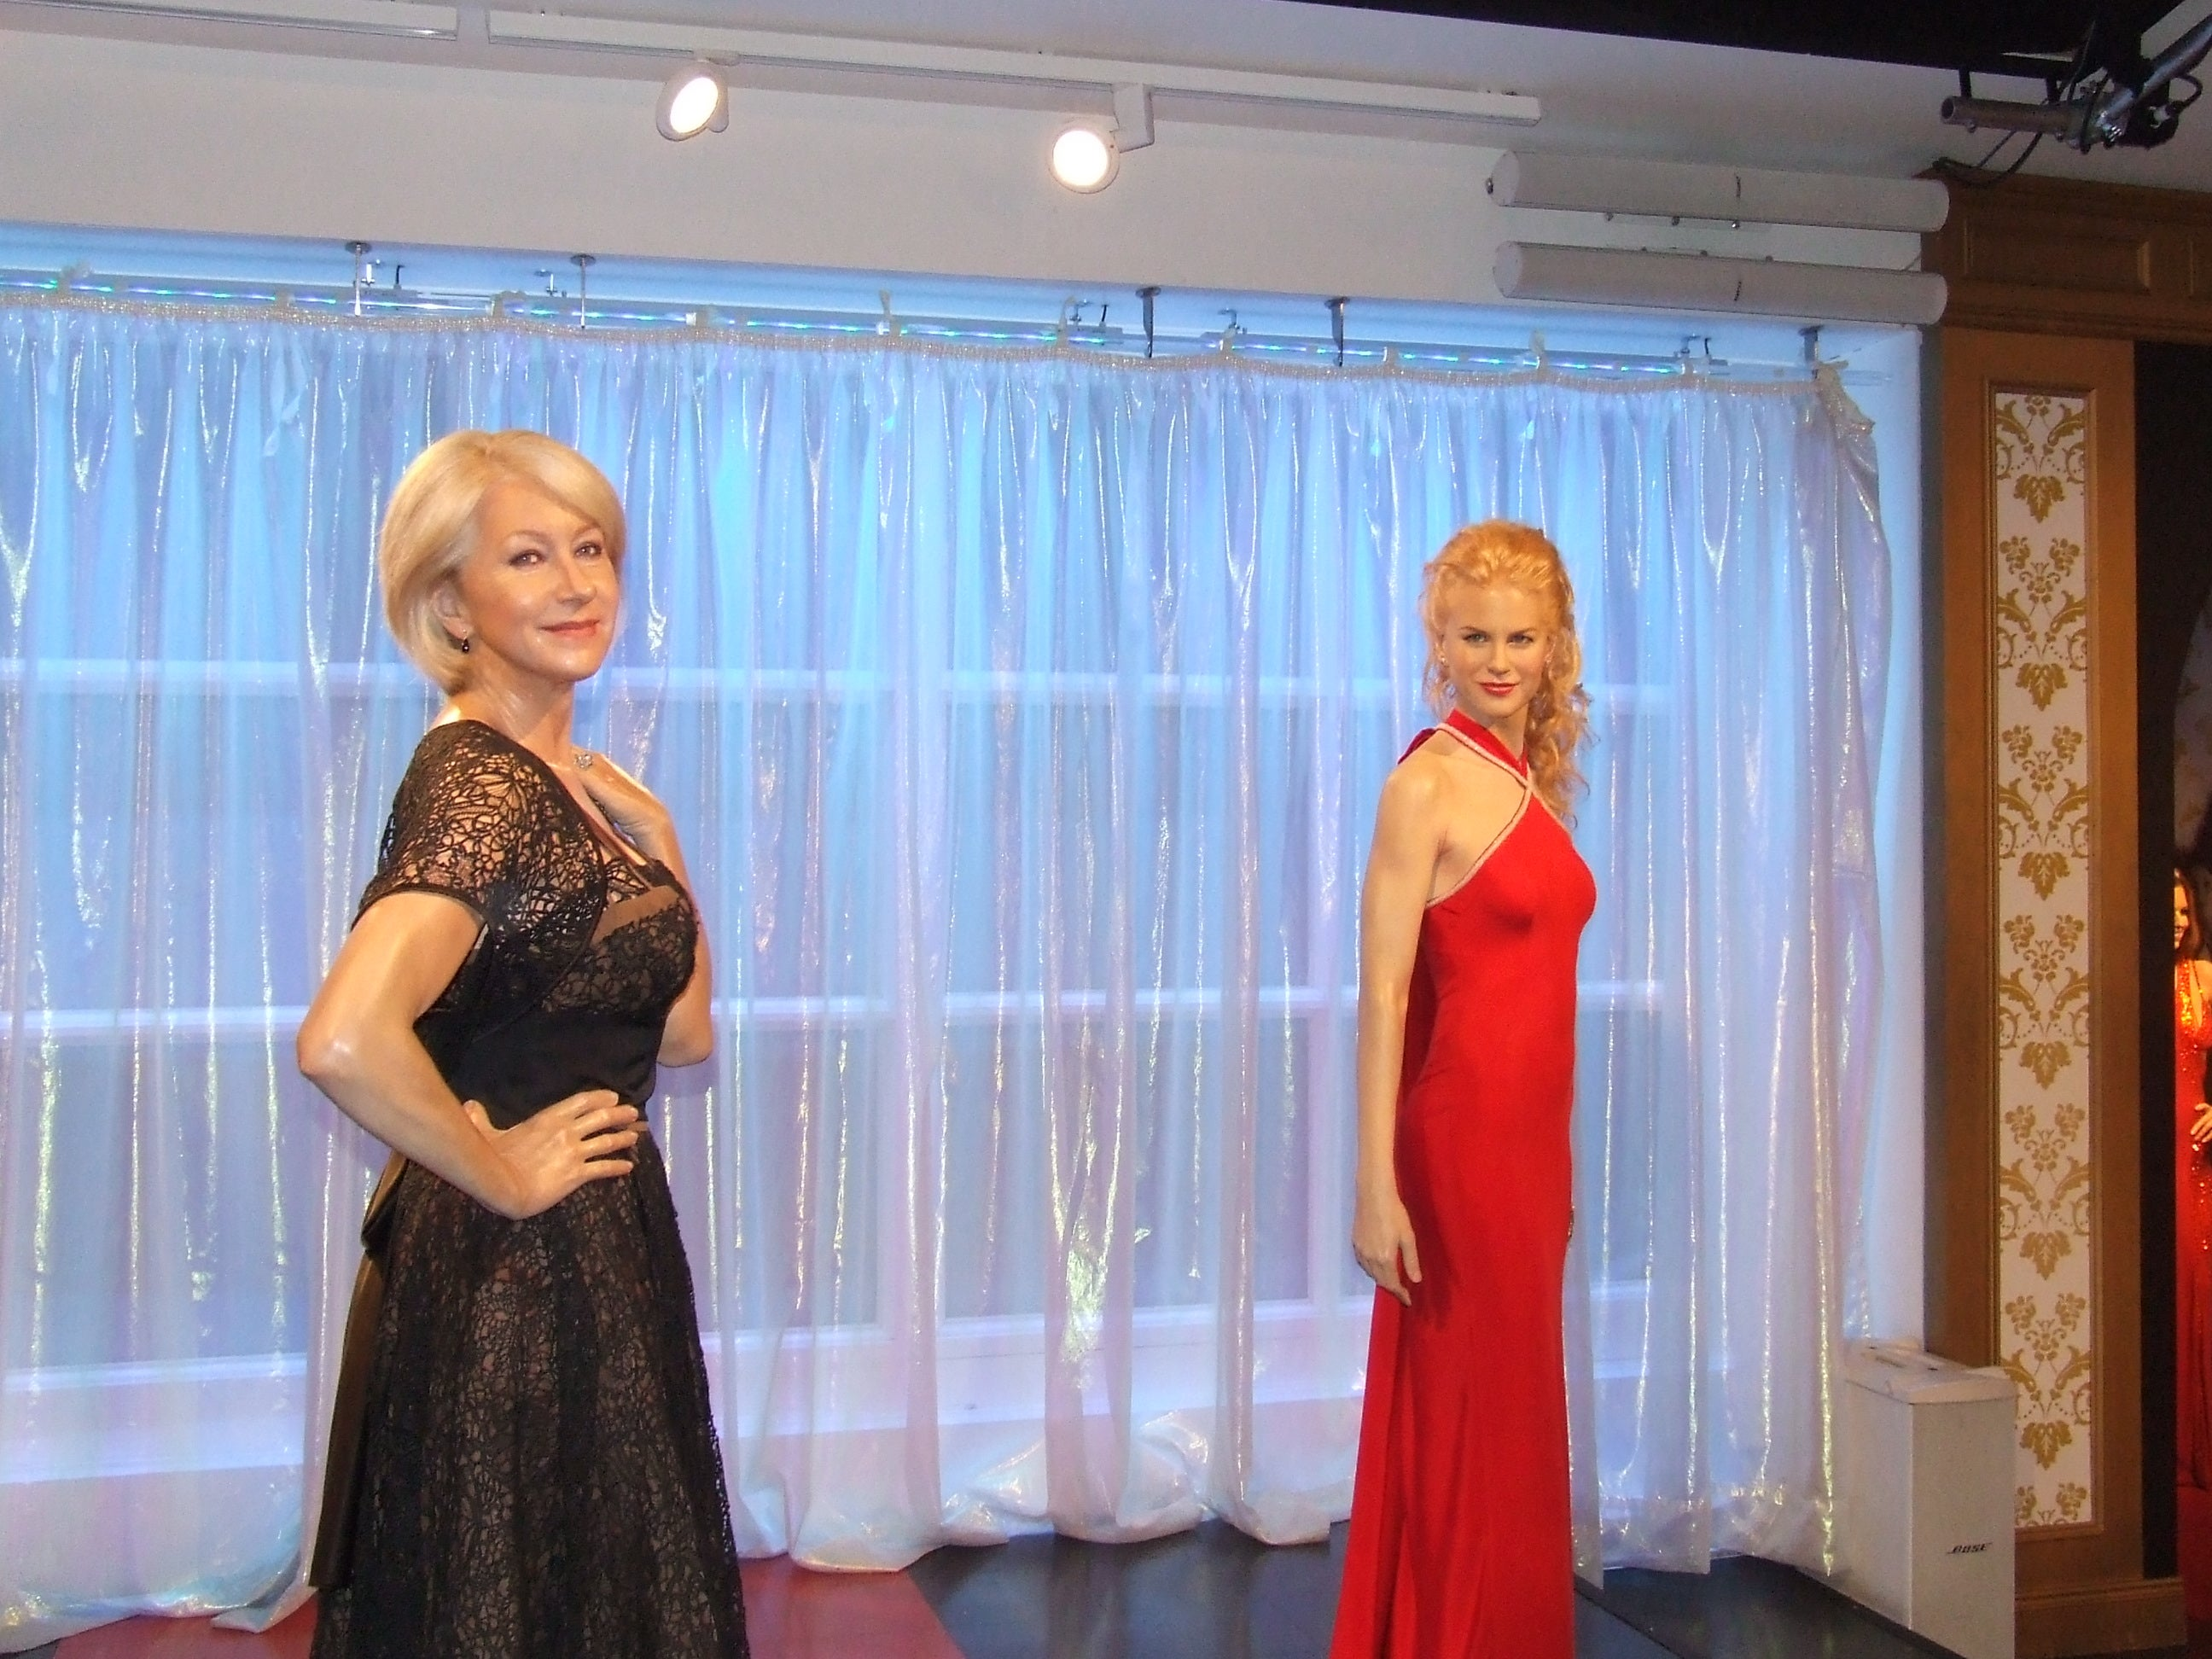 Escaparate en Museo Madame Tussauds